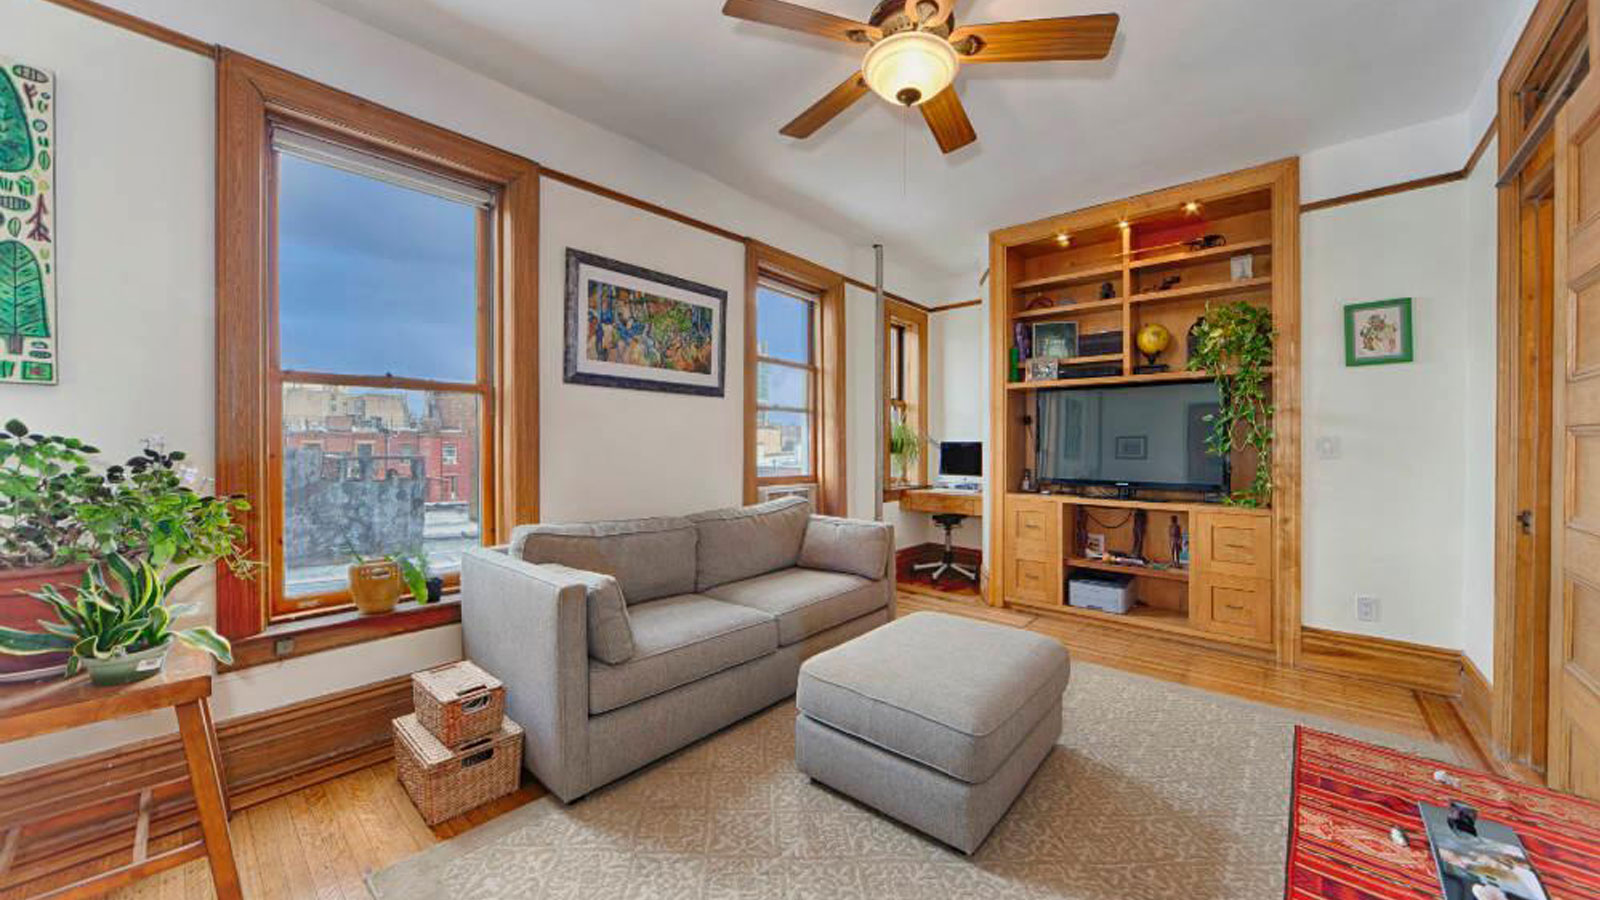 Mt. Morris Court, 3 West 122nd Street, NYC   Condo Apartments | CityRealty